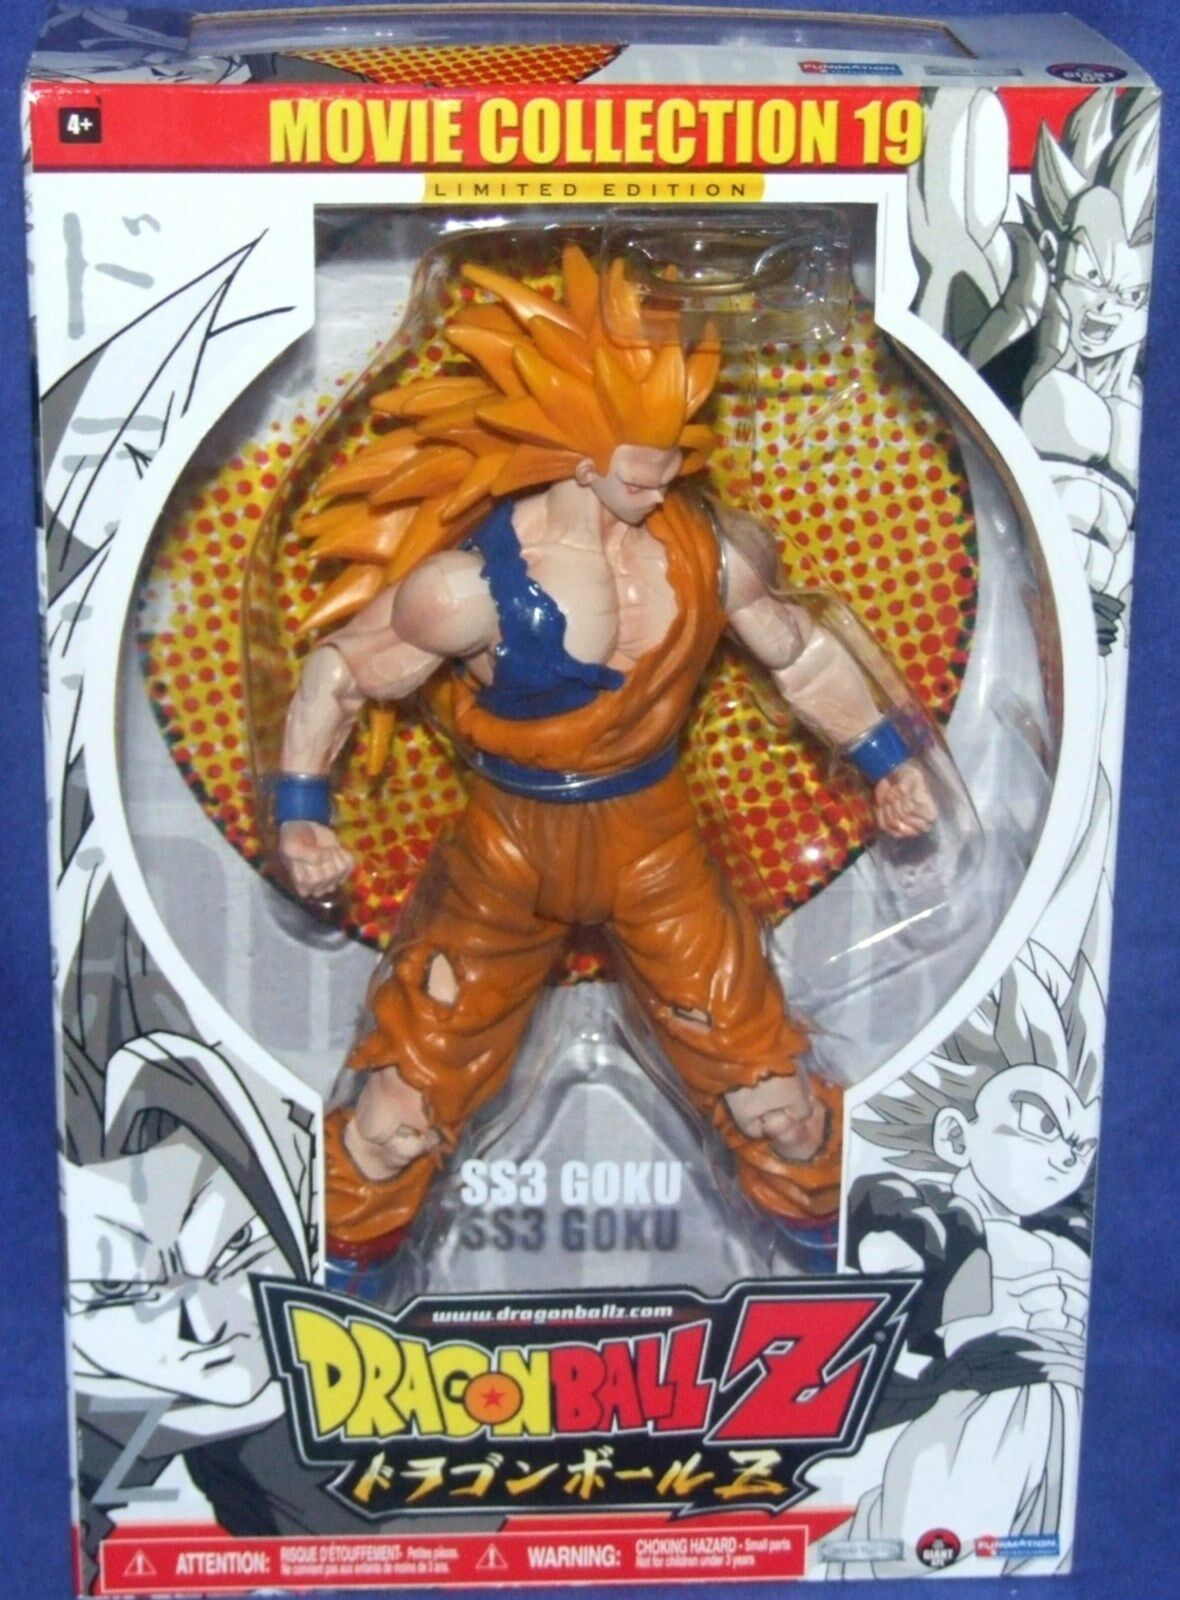 DRAGONBALL Z Movie Collection 19 Limited Edition SS3 Goku New Factory Sealed